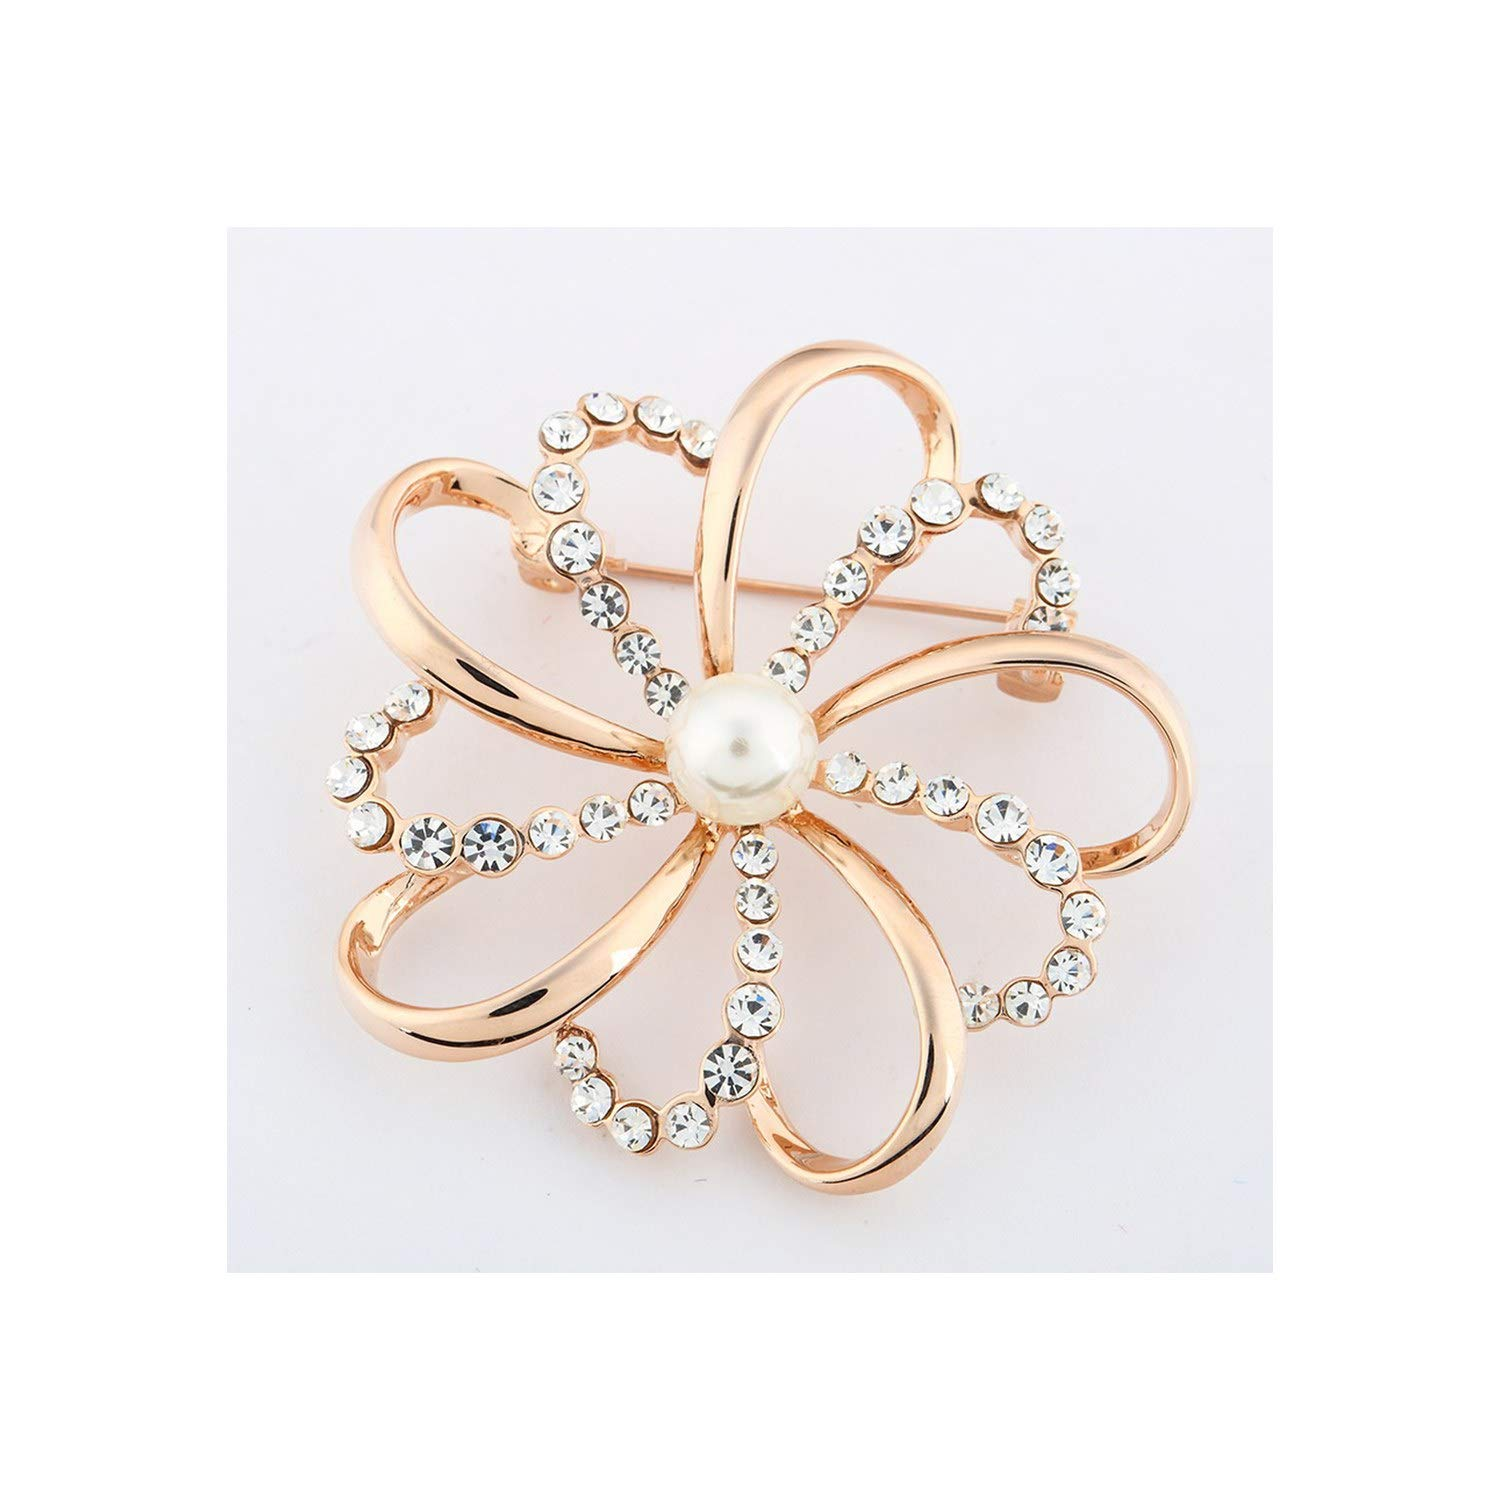 MOAAA Fashion Jewelry Vintage Gold Brooch Pins Crystals Imitation Pearl Flower Brooch Wedding Accessories